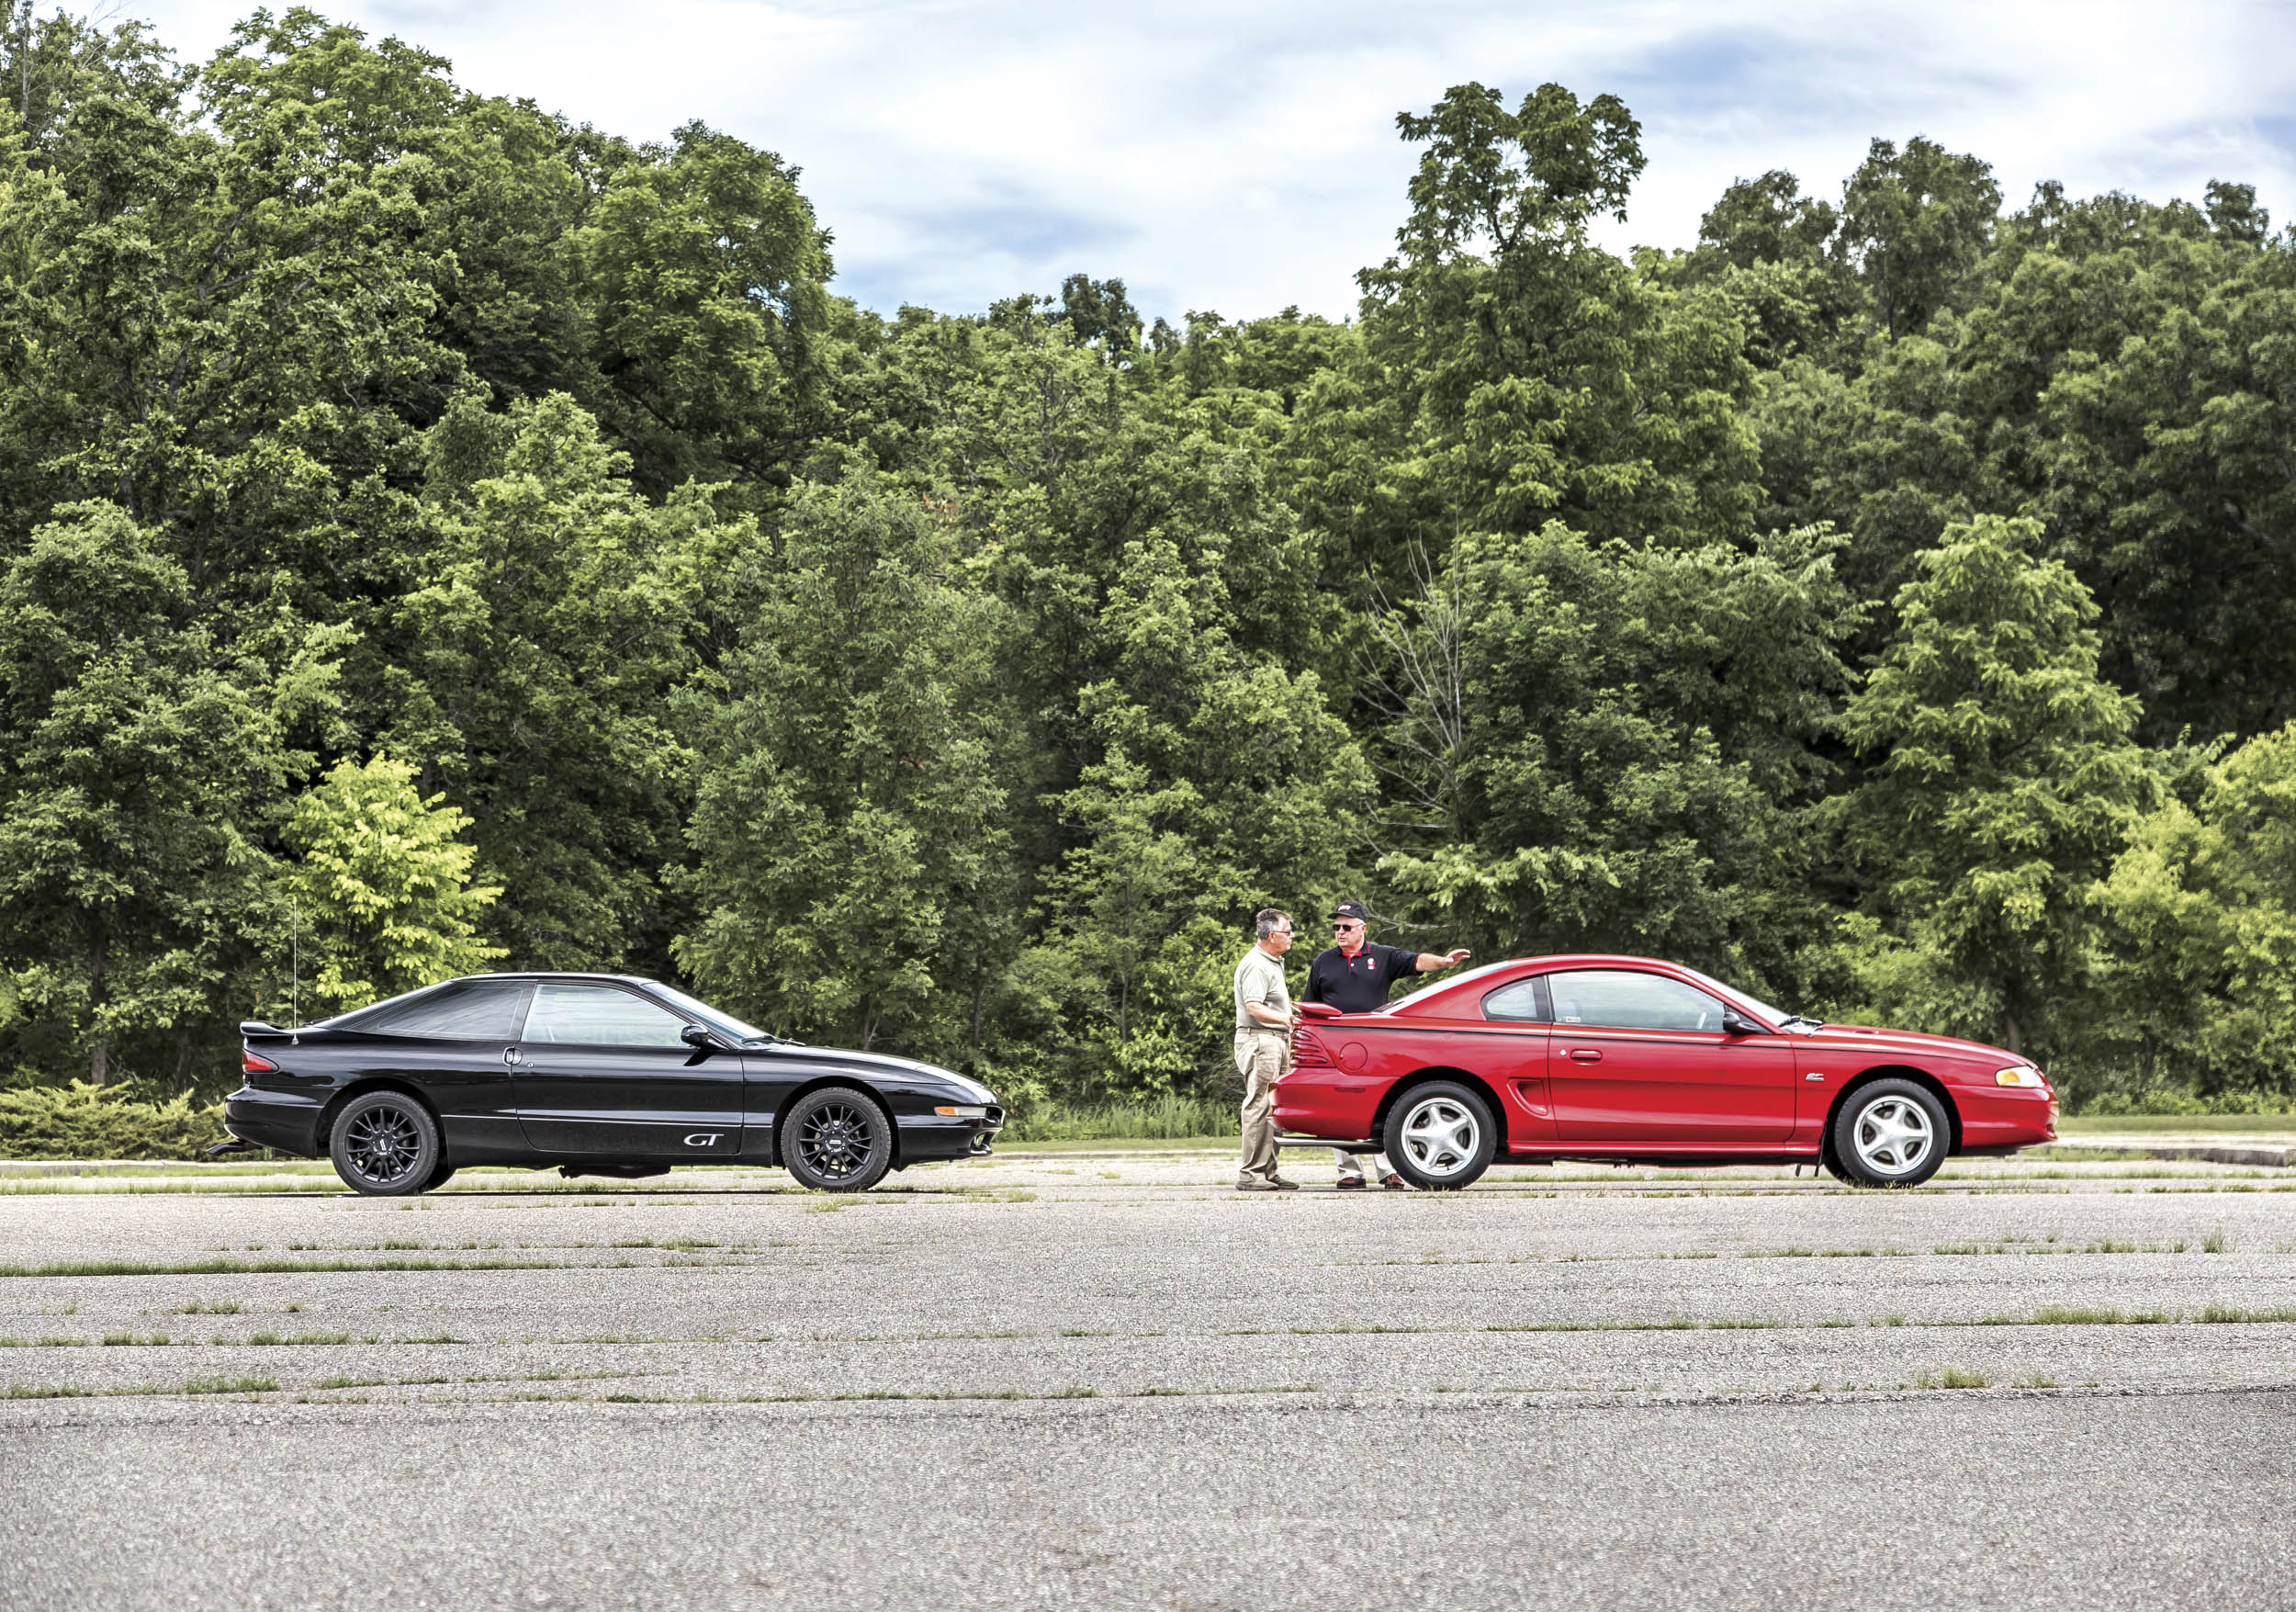 Once upon a time, bean counters and higher-ups at Ford didn't think the Probe and the Mustang could coexist. Dedicated conspirators within thought otherwise.